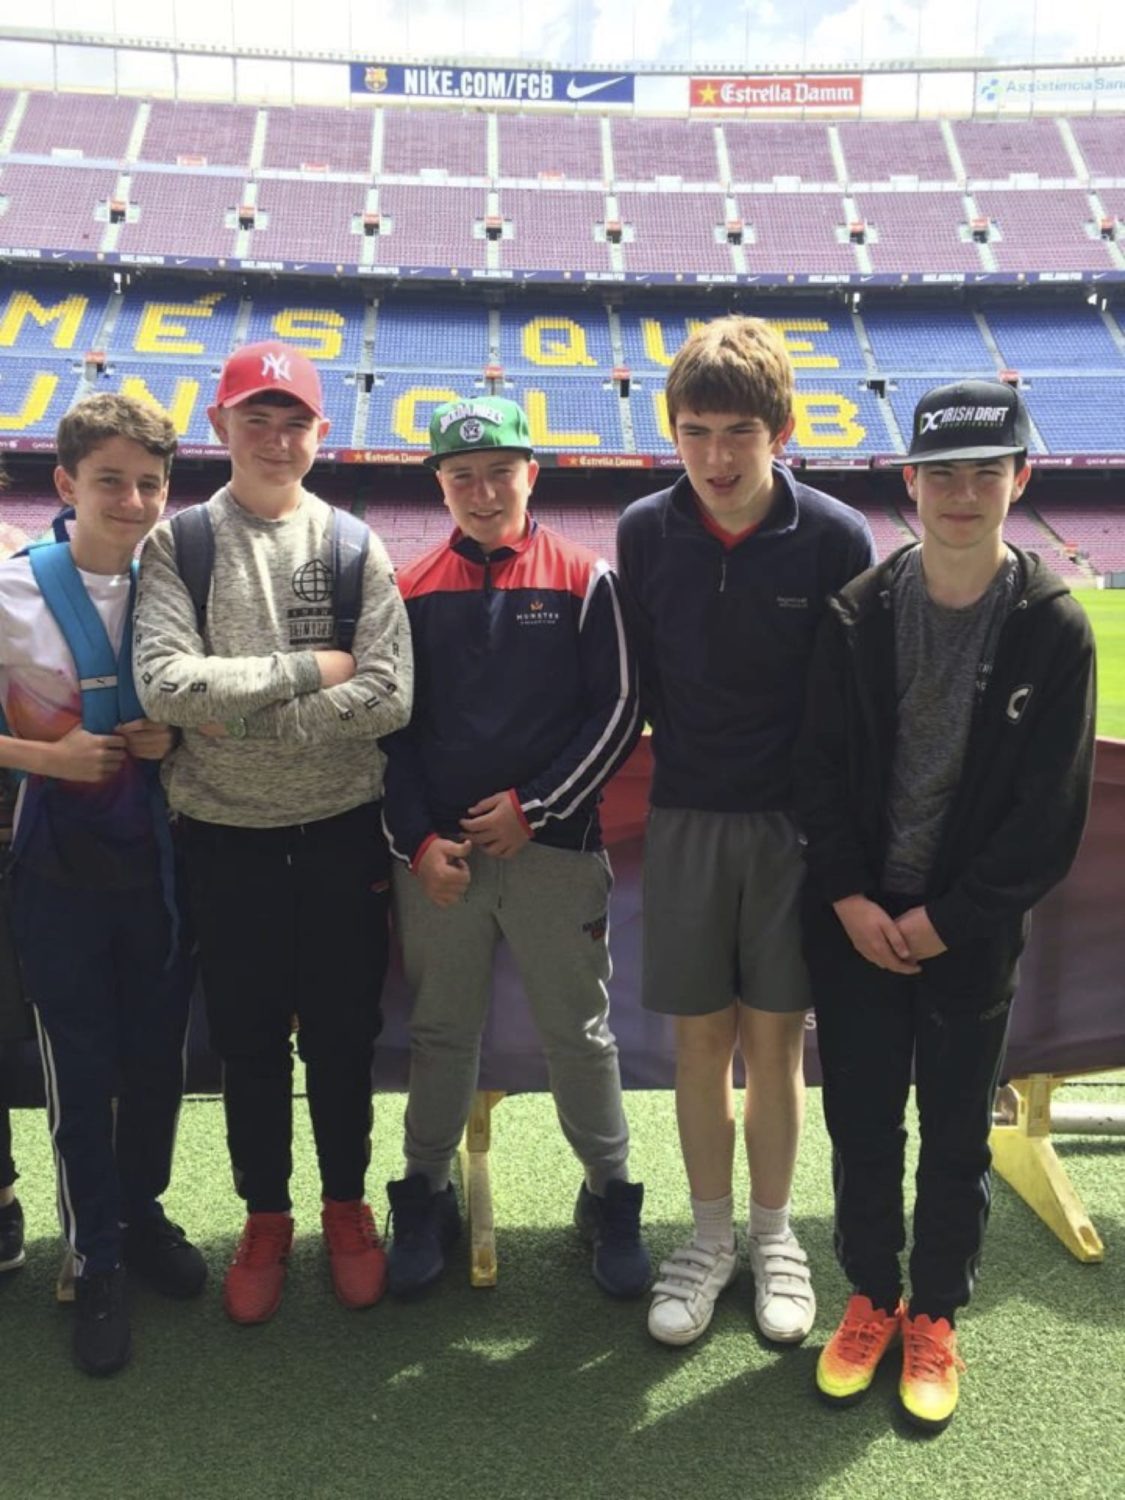 May 2017: Conor Fox, Shane O Reilly, Shane Copse, Darragh Leahy and Billy Cunningham at Barcelona's Nou Camp Stadium